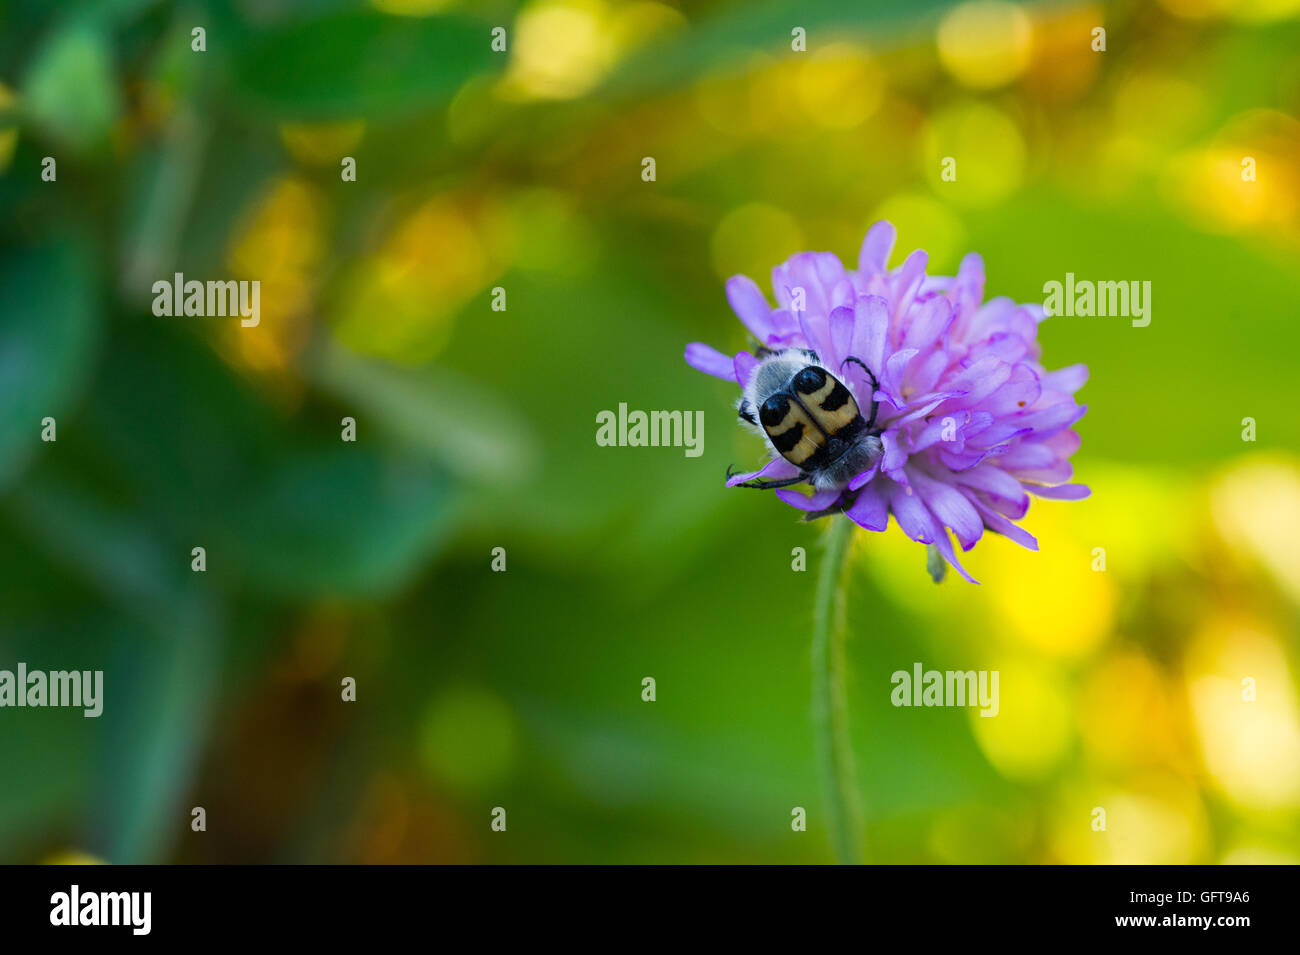 An insect sucking nectar from a flower. - Stock Image